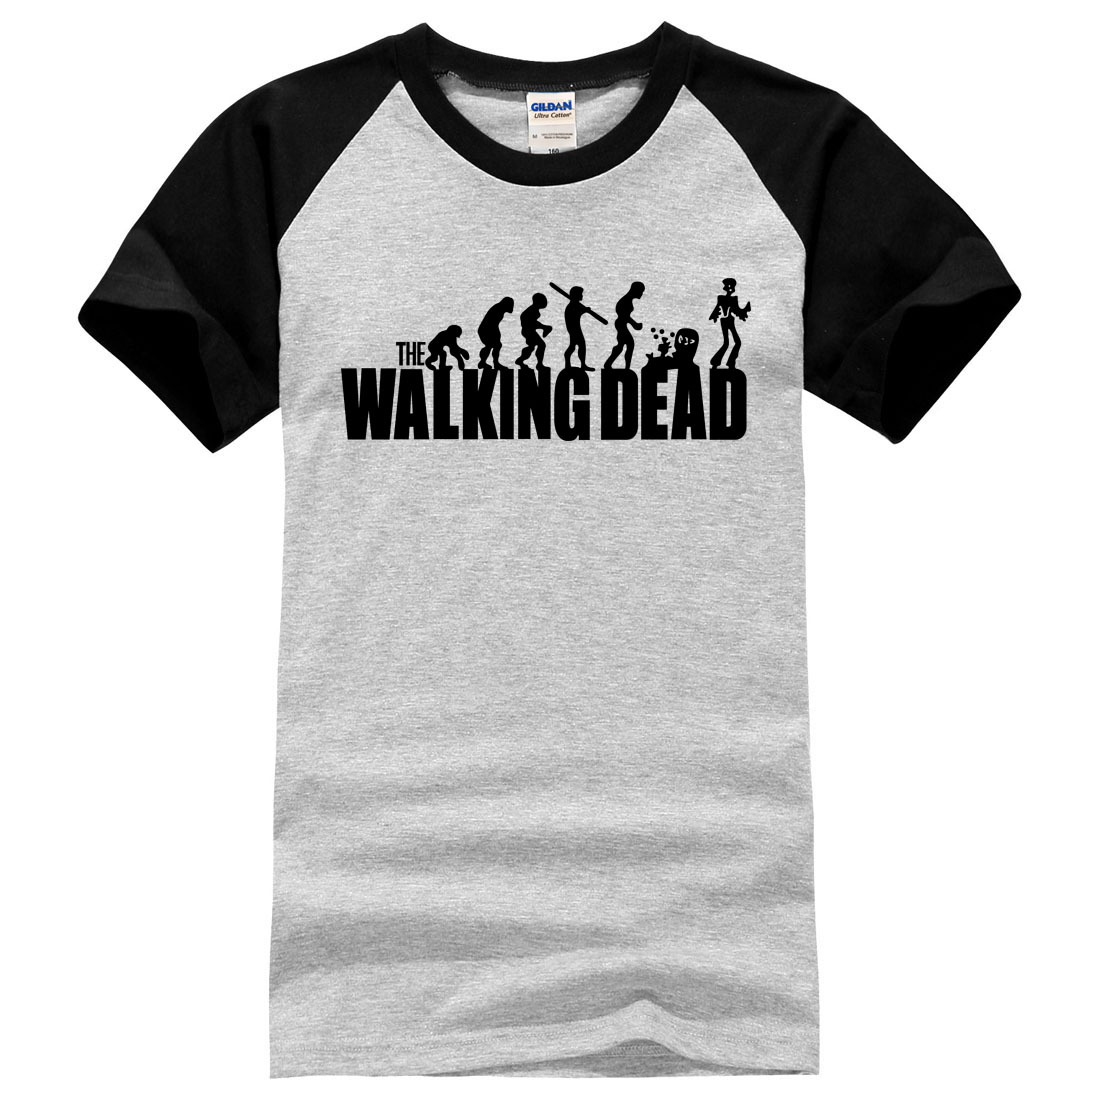 2017-new-font-b-the-b-font-font-b-walking-b-font-font-b-dead-b-font-printed-t-shirt-100-cotton-men-t-shirt-casual-fitness-brand-clothing-tops-tees-male-mens-new-summer